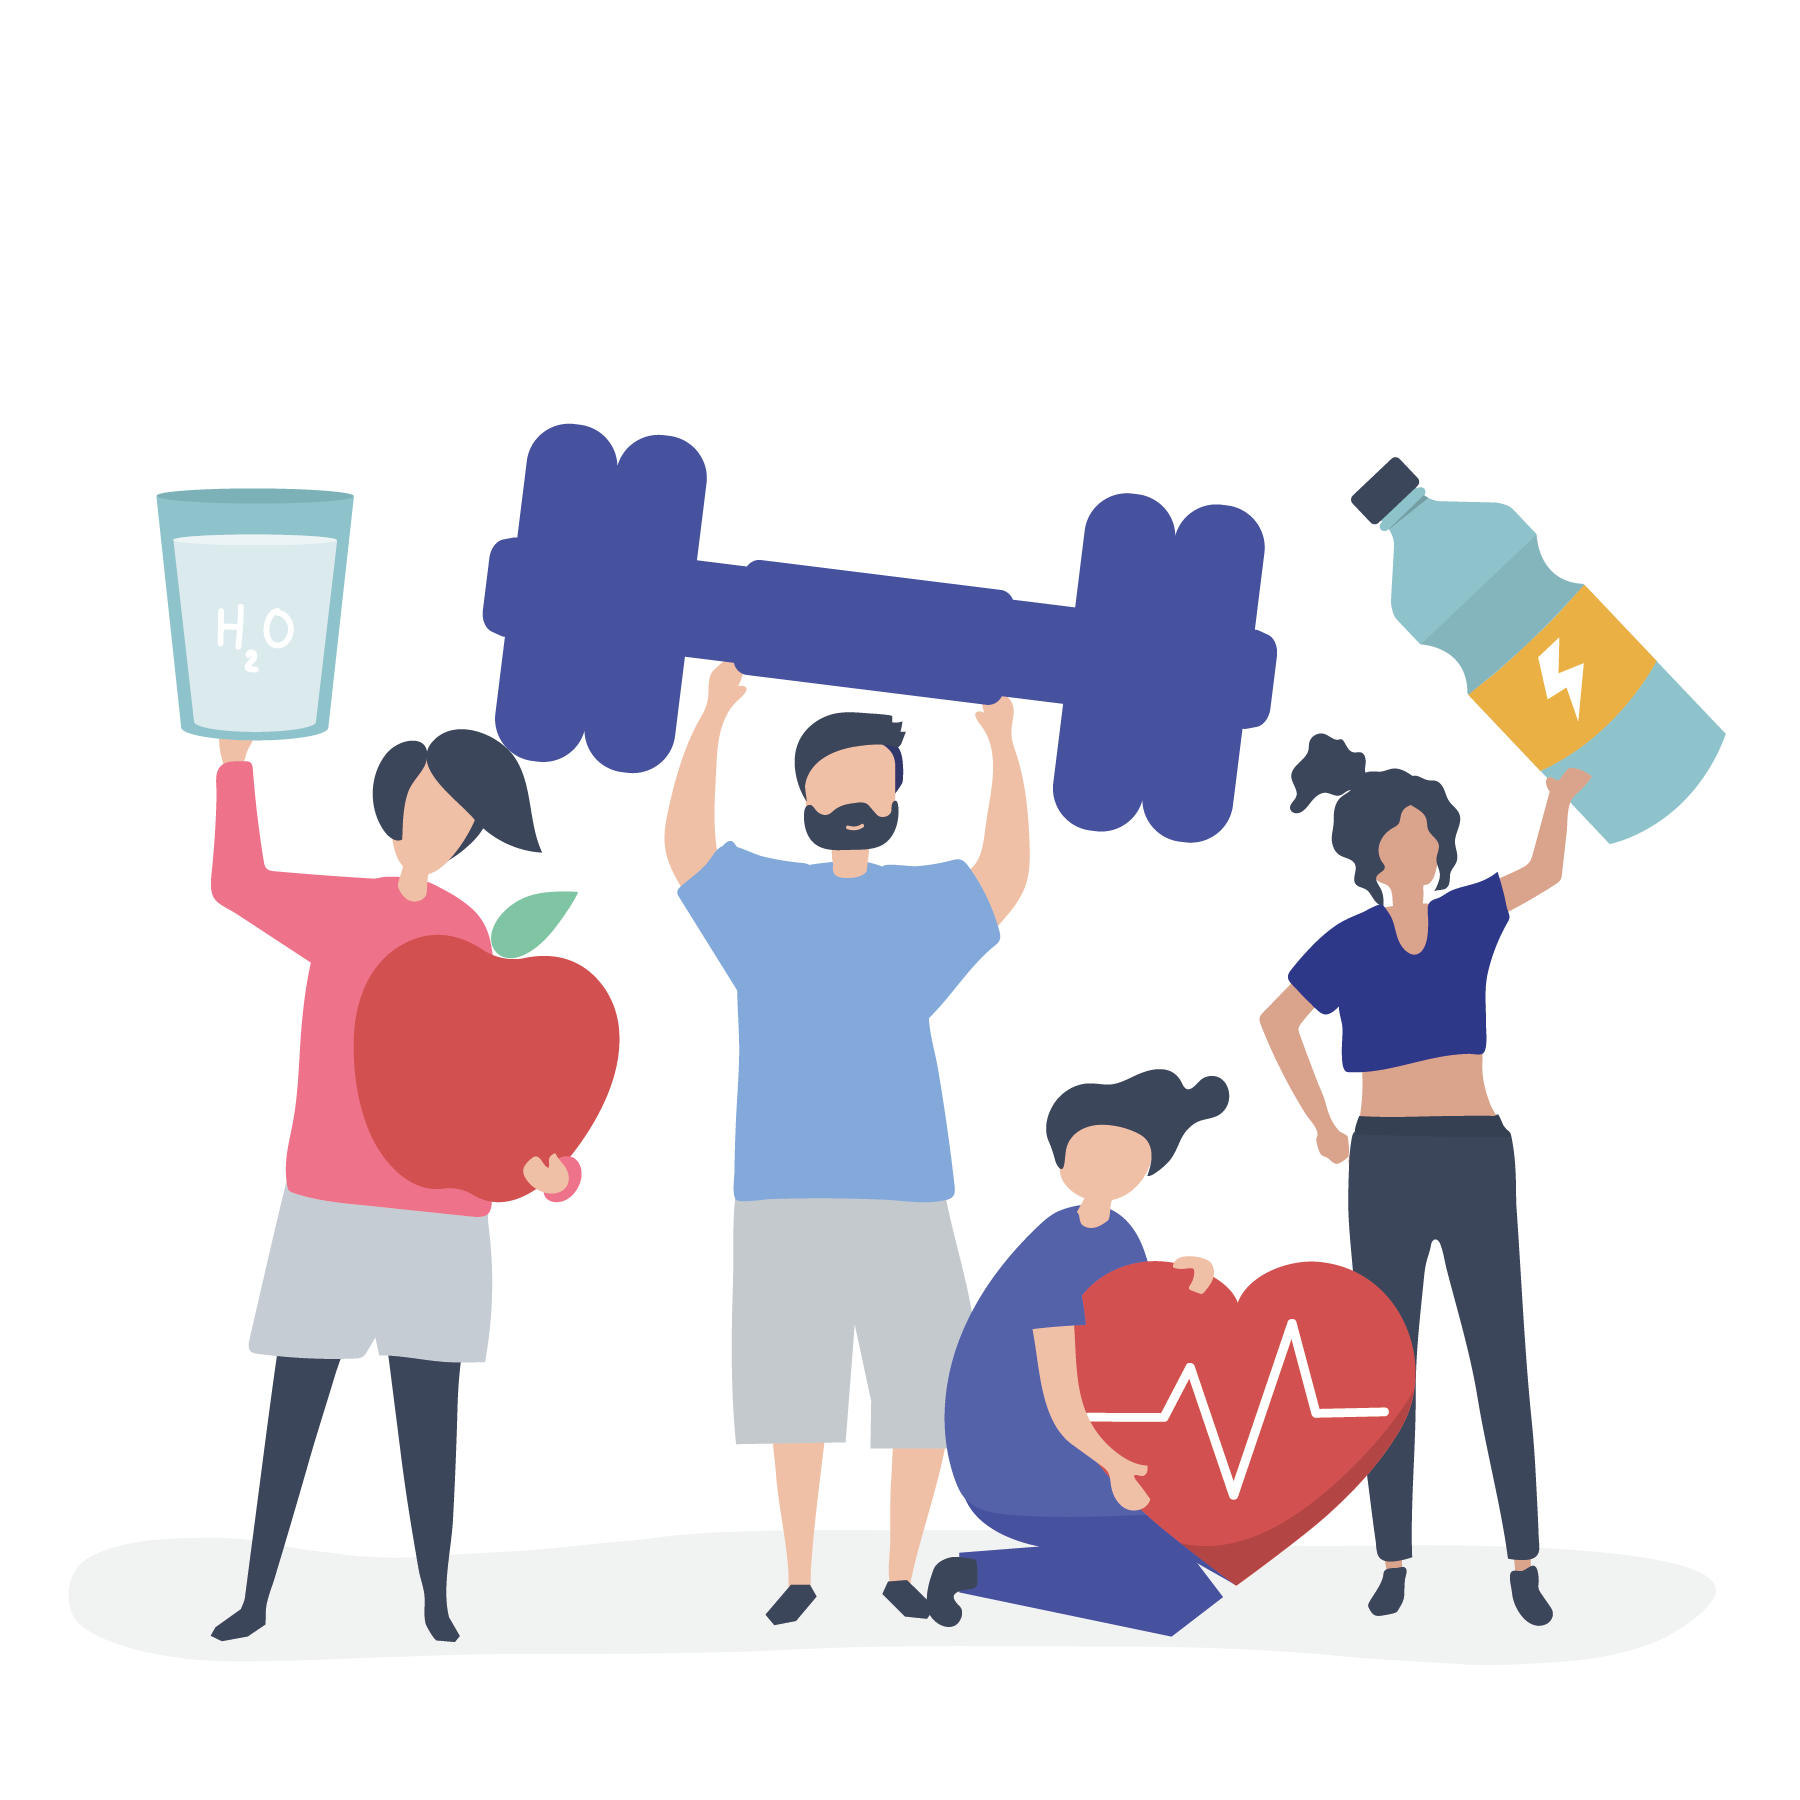 Physical Activity Icon@3x.png